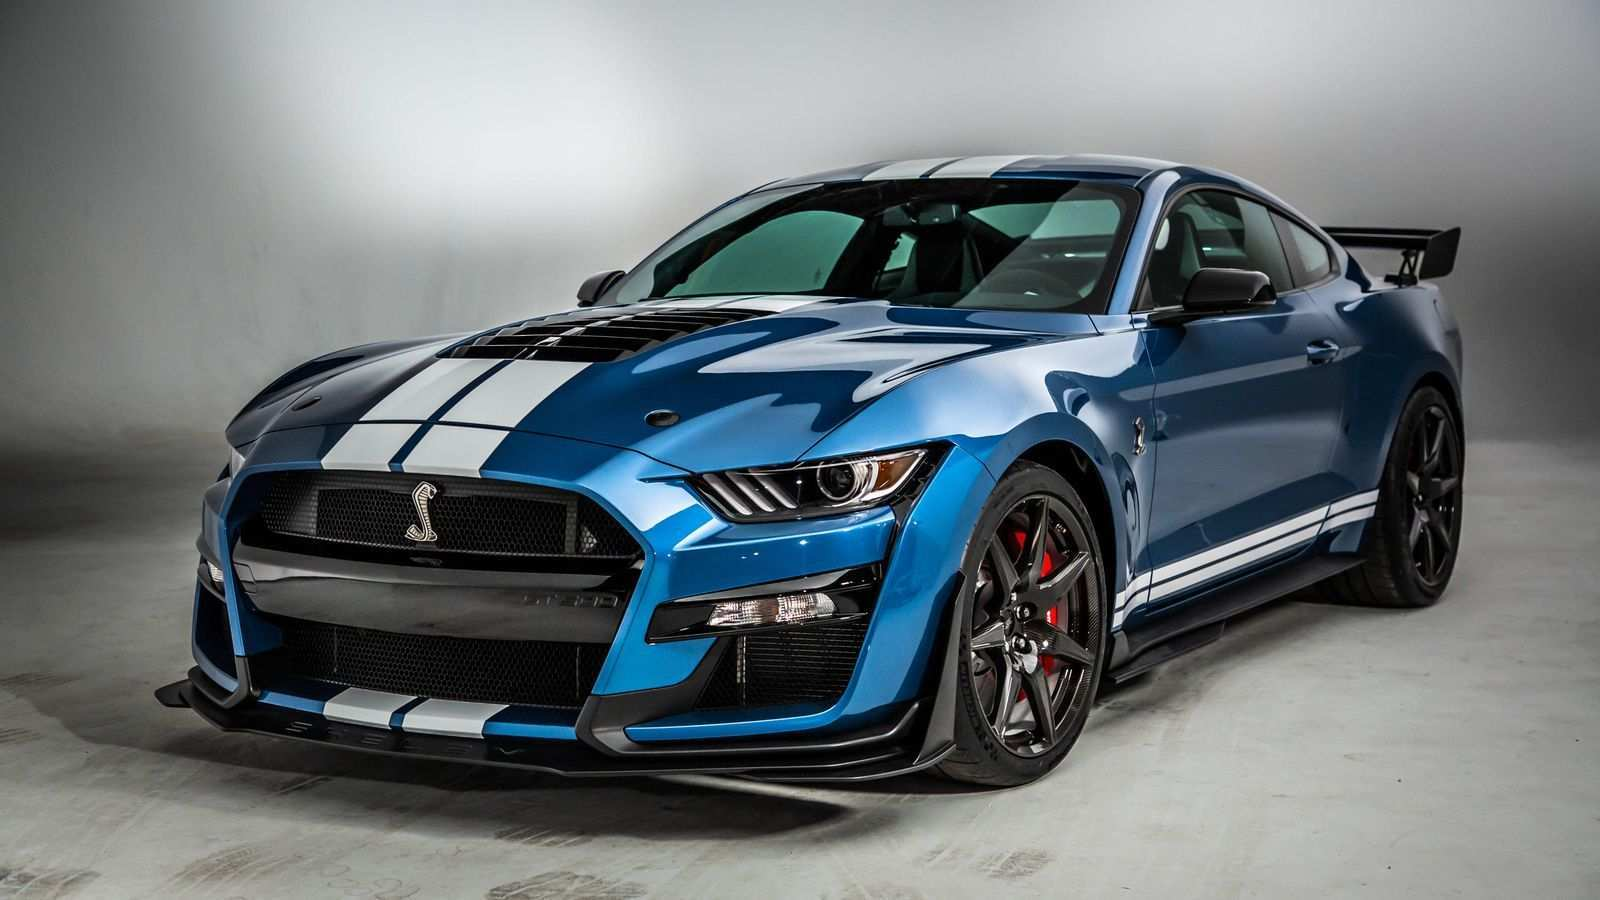 75 The Price Of 2020 Ford Mustang Shelby Gt500 Performance And New Engine